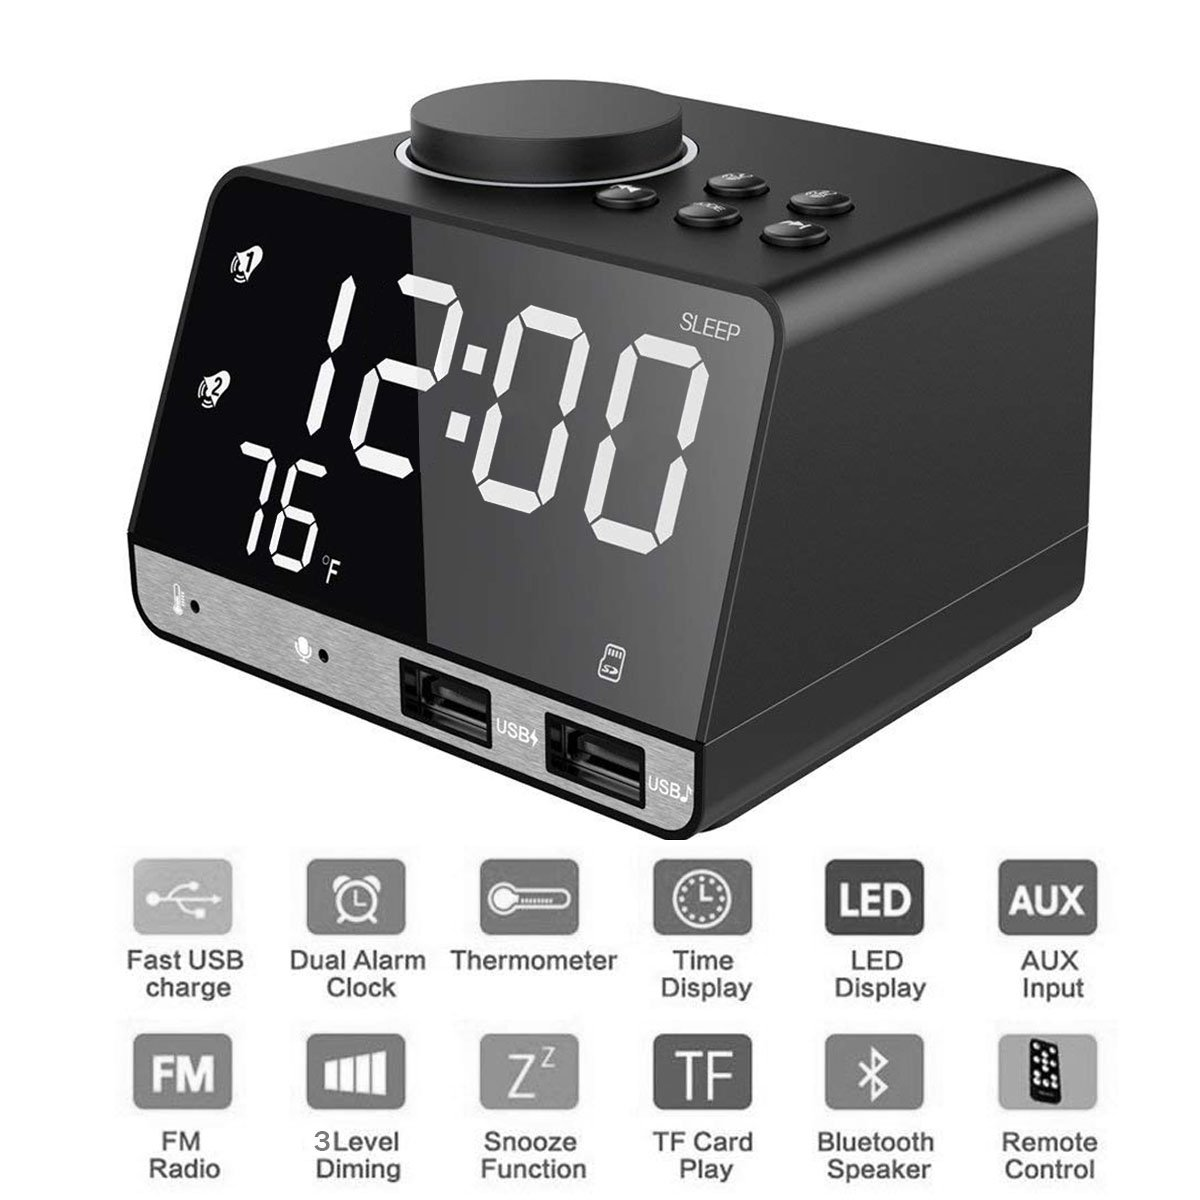 Foreita Digital Alarm Clock, Bluetooth Speaker with Dual Snooze Clock USB Charging Port, AUX TF Card Play, Thermometer, Large Mirror LED Dimmable Display for Bedroom, Kitchen, Table, Desk by Foreita